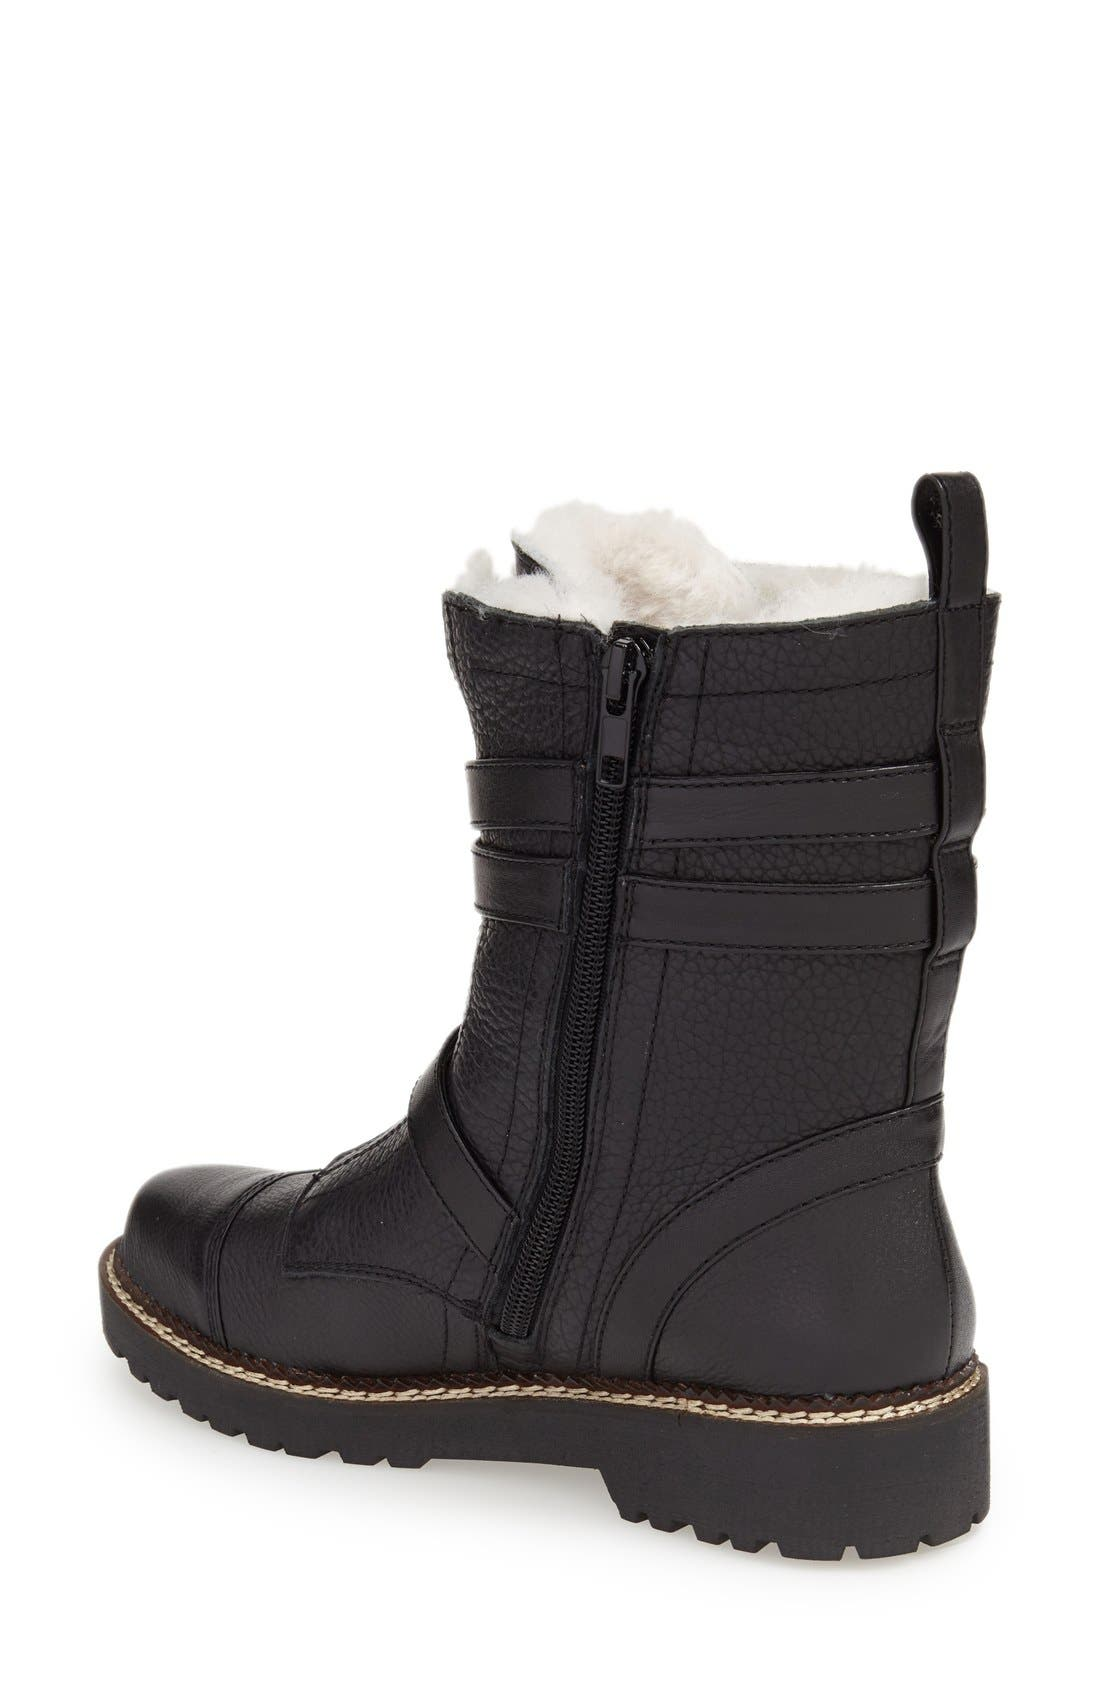 'Pelli' Genuine Shearling Lined Boot,                             Alternate thumbnail 2, color,                             Black Leather